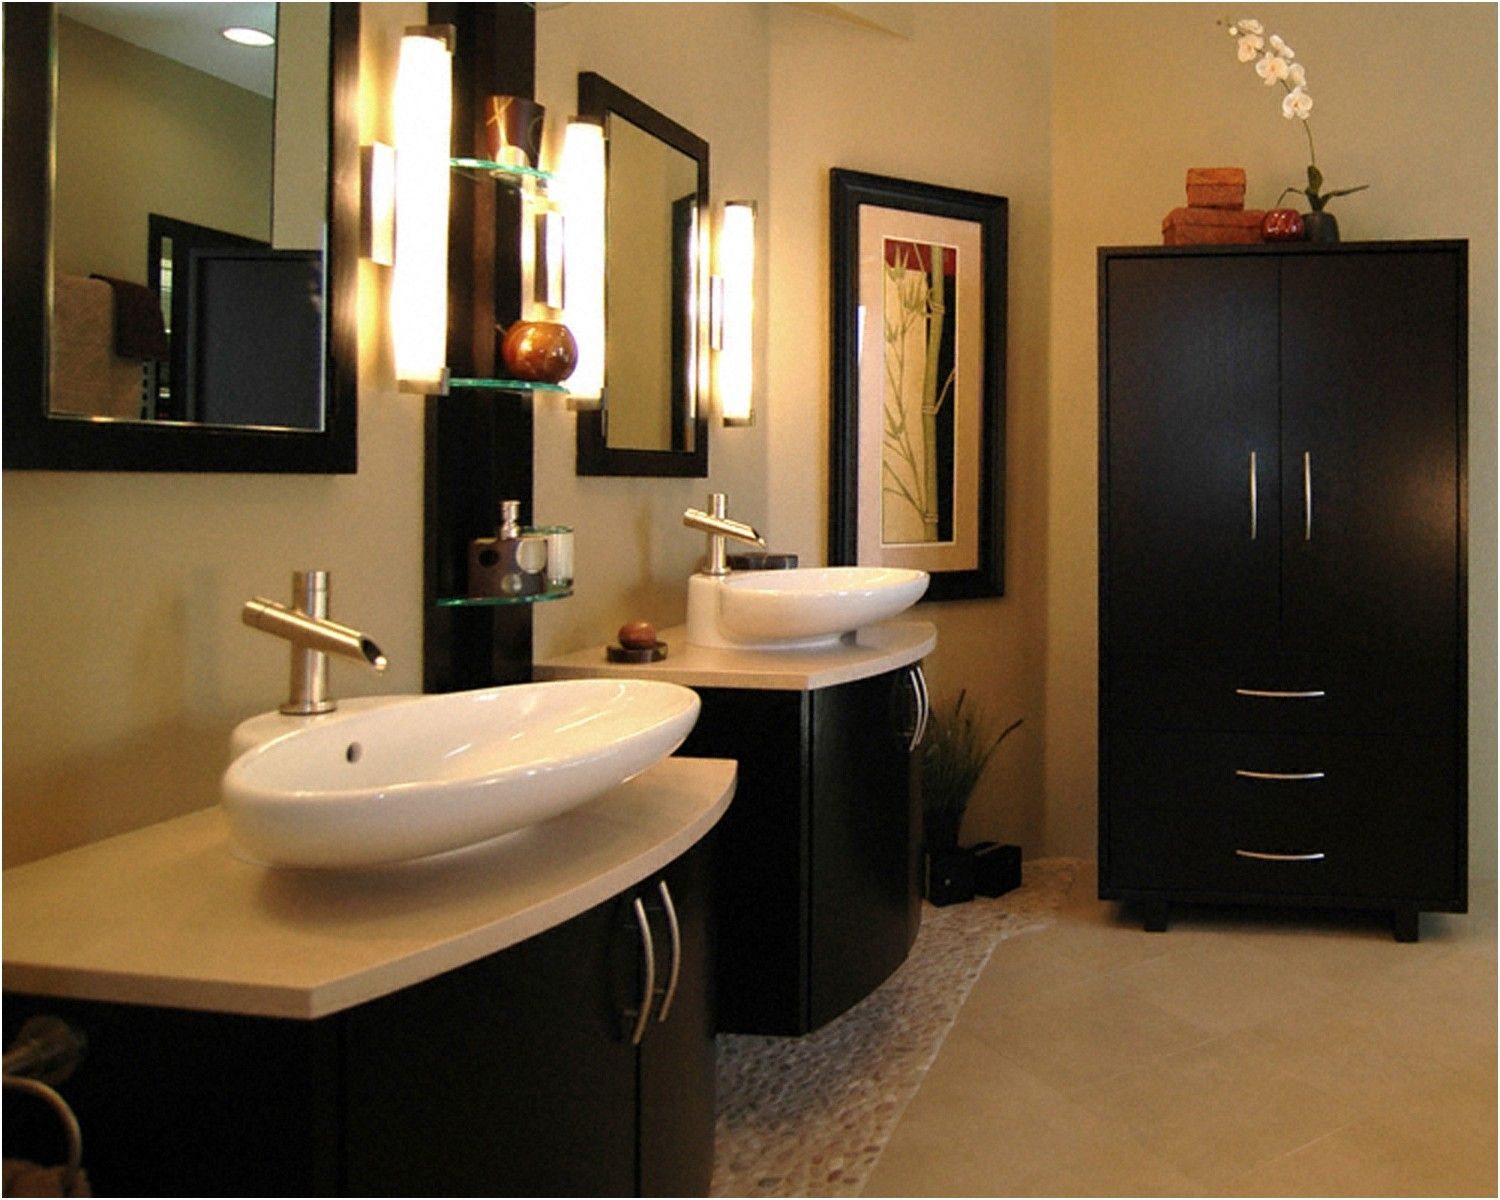 25 Best Asian Bathroom Design Ideas Vessel Sink Sinks And From Asian Bathroom  Design